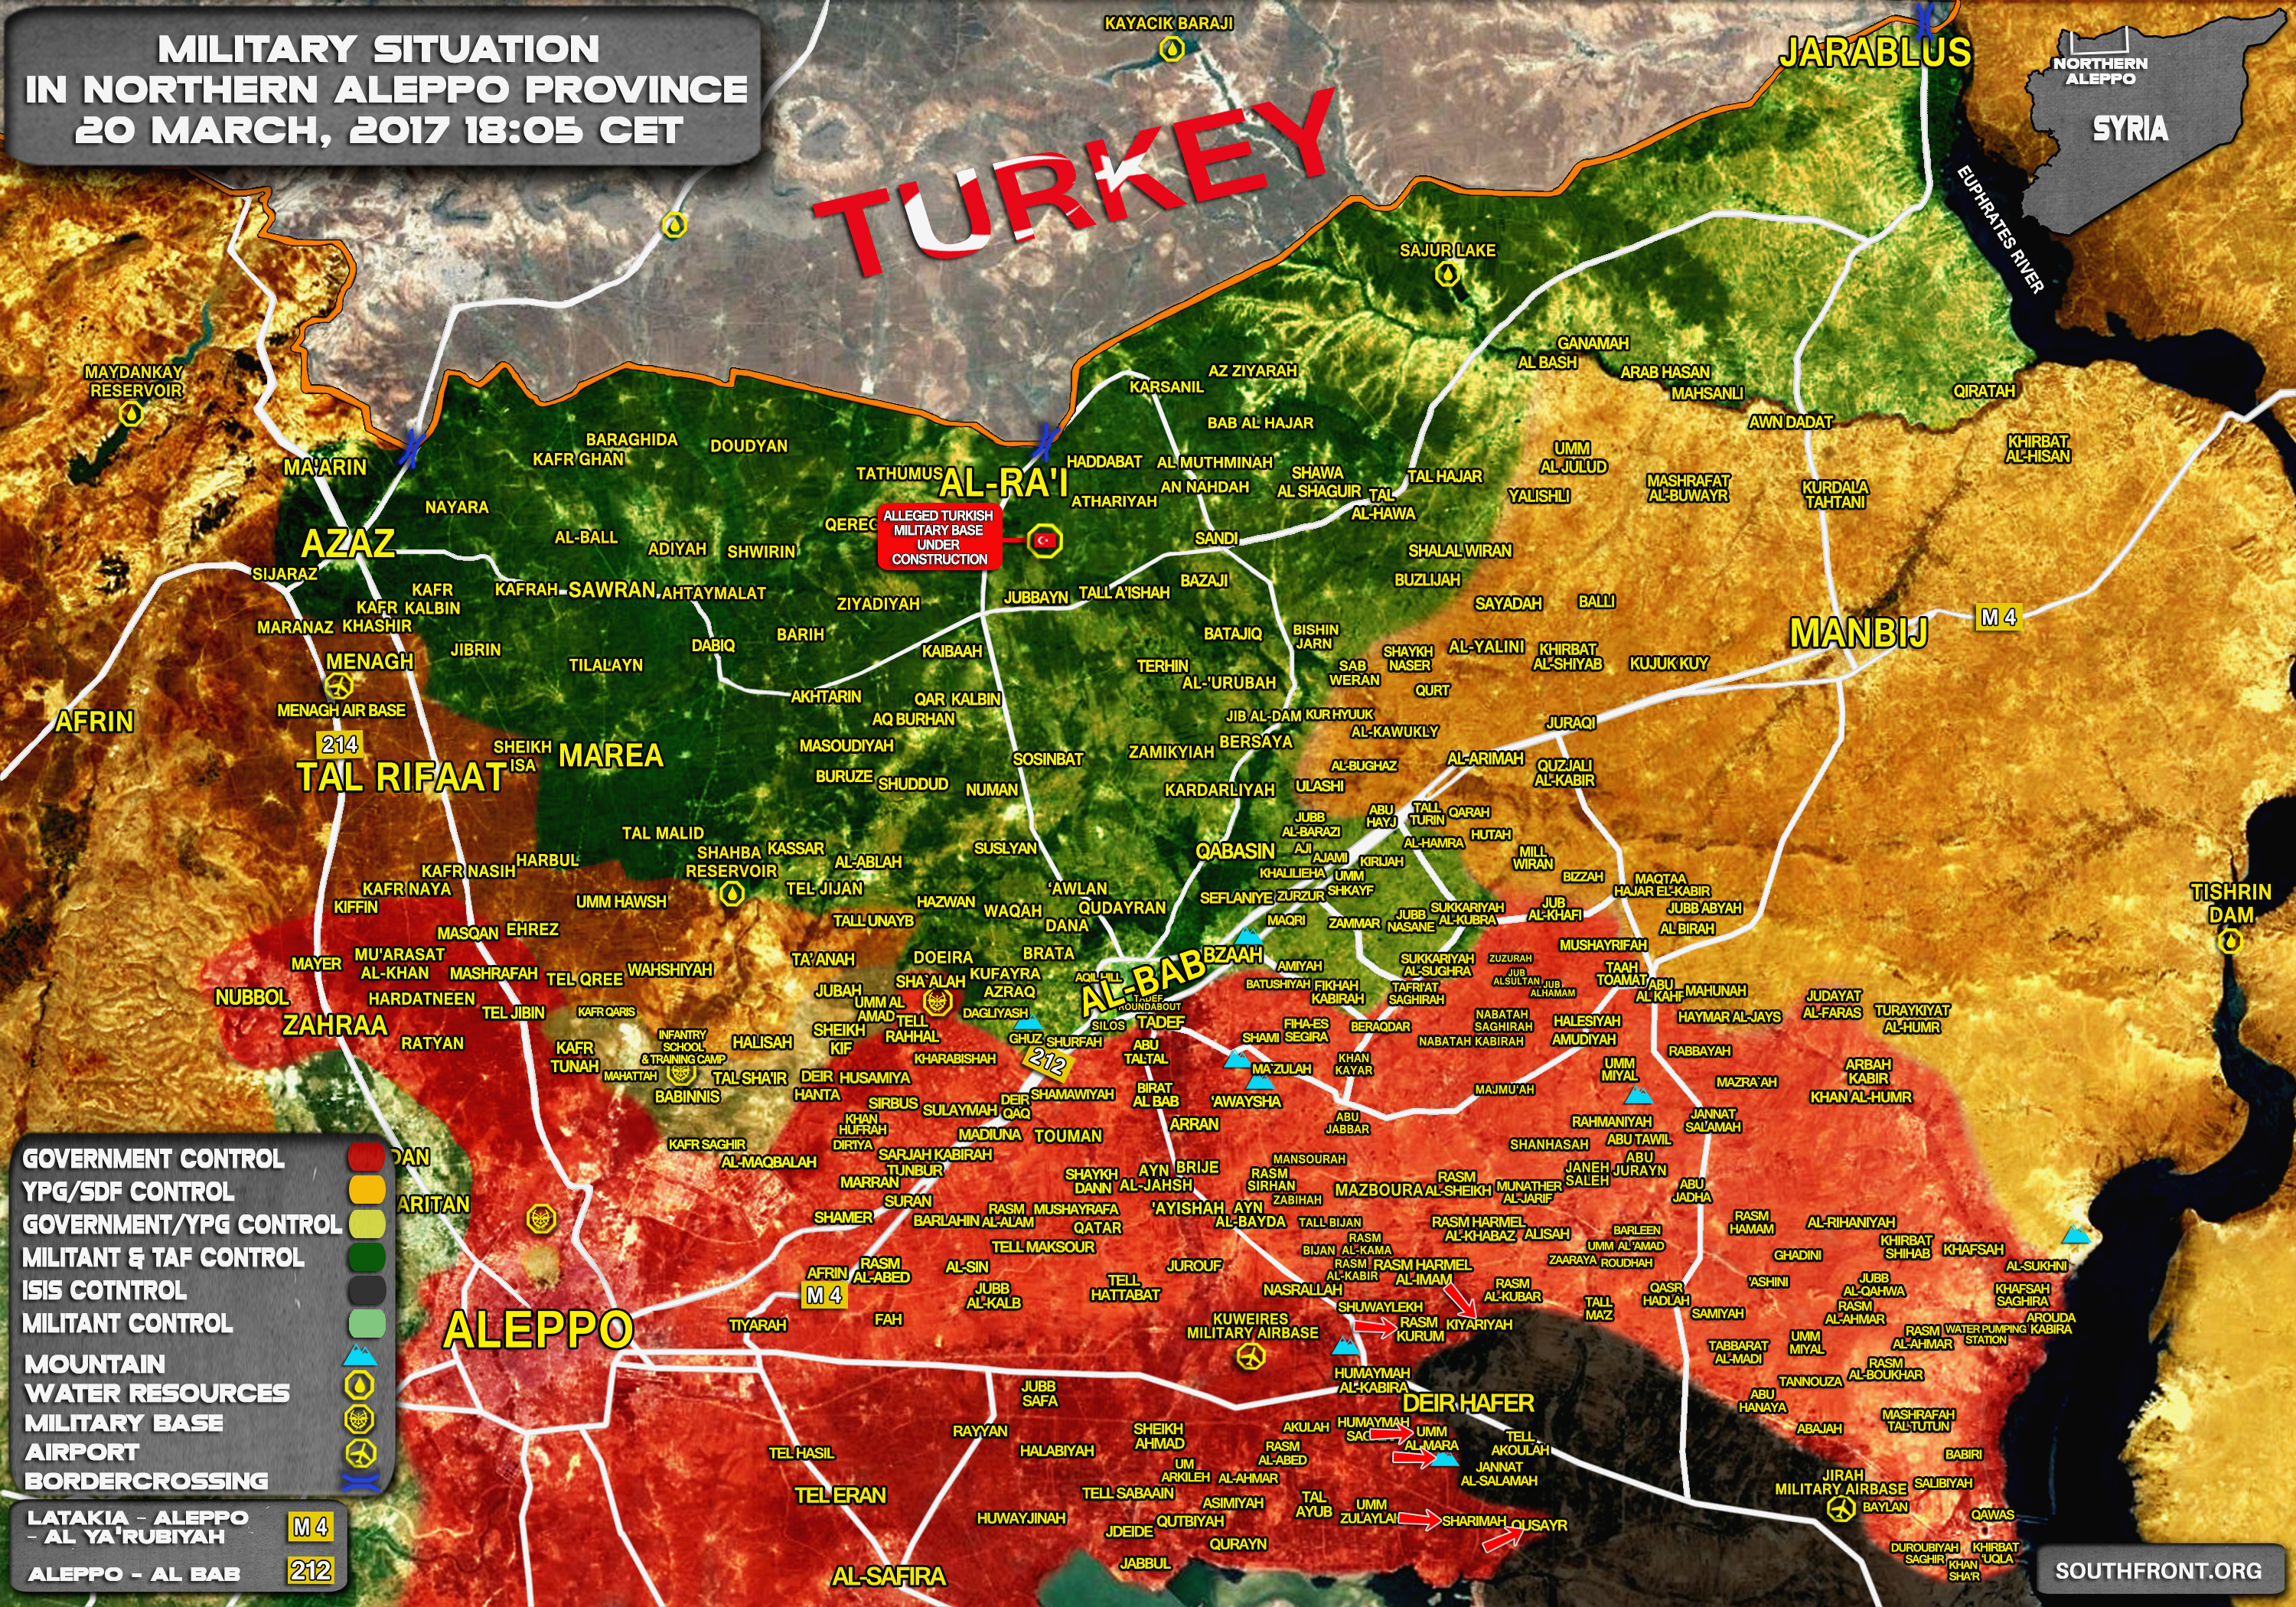 Military Situation In Northern Part Of Aleppo Province On March 20, 2017 (Syrian Map Update)